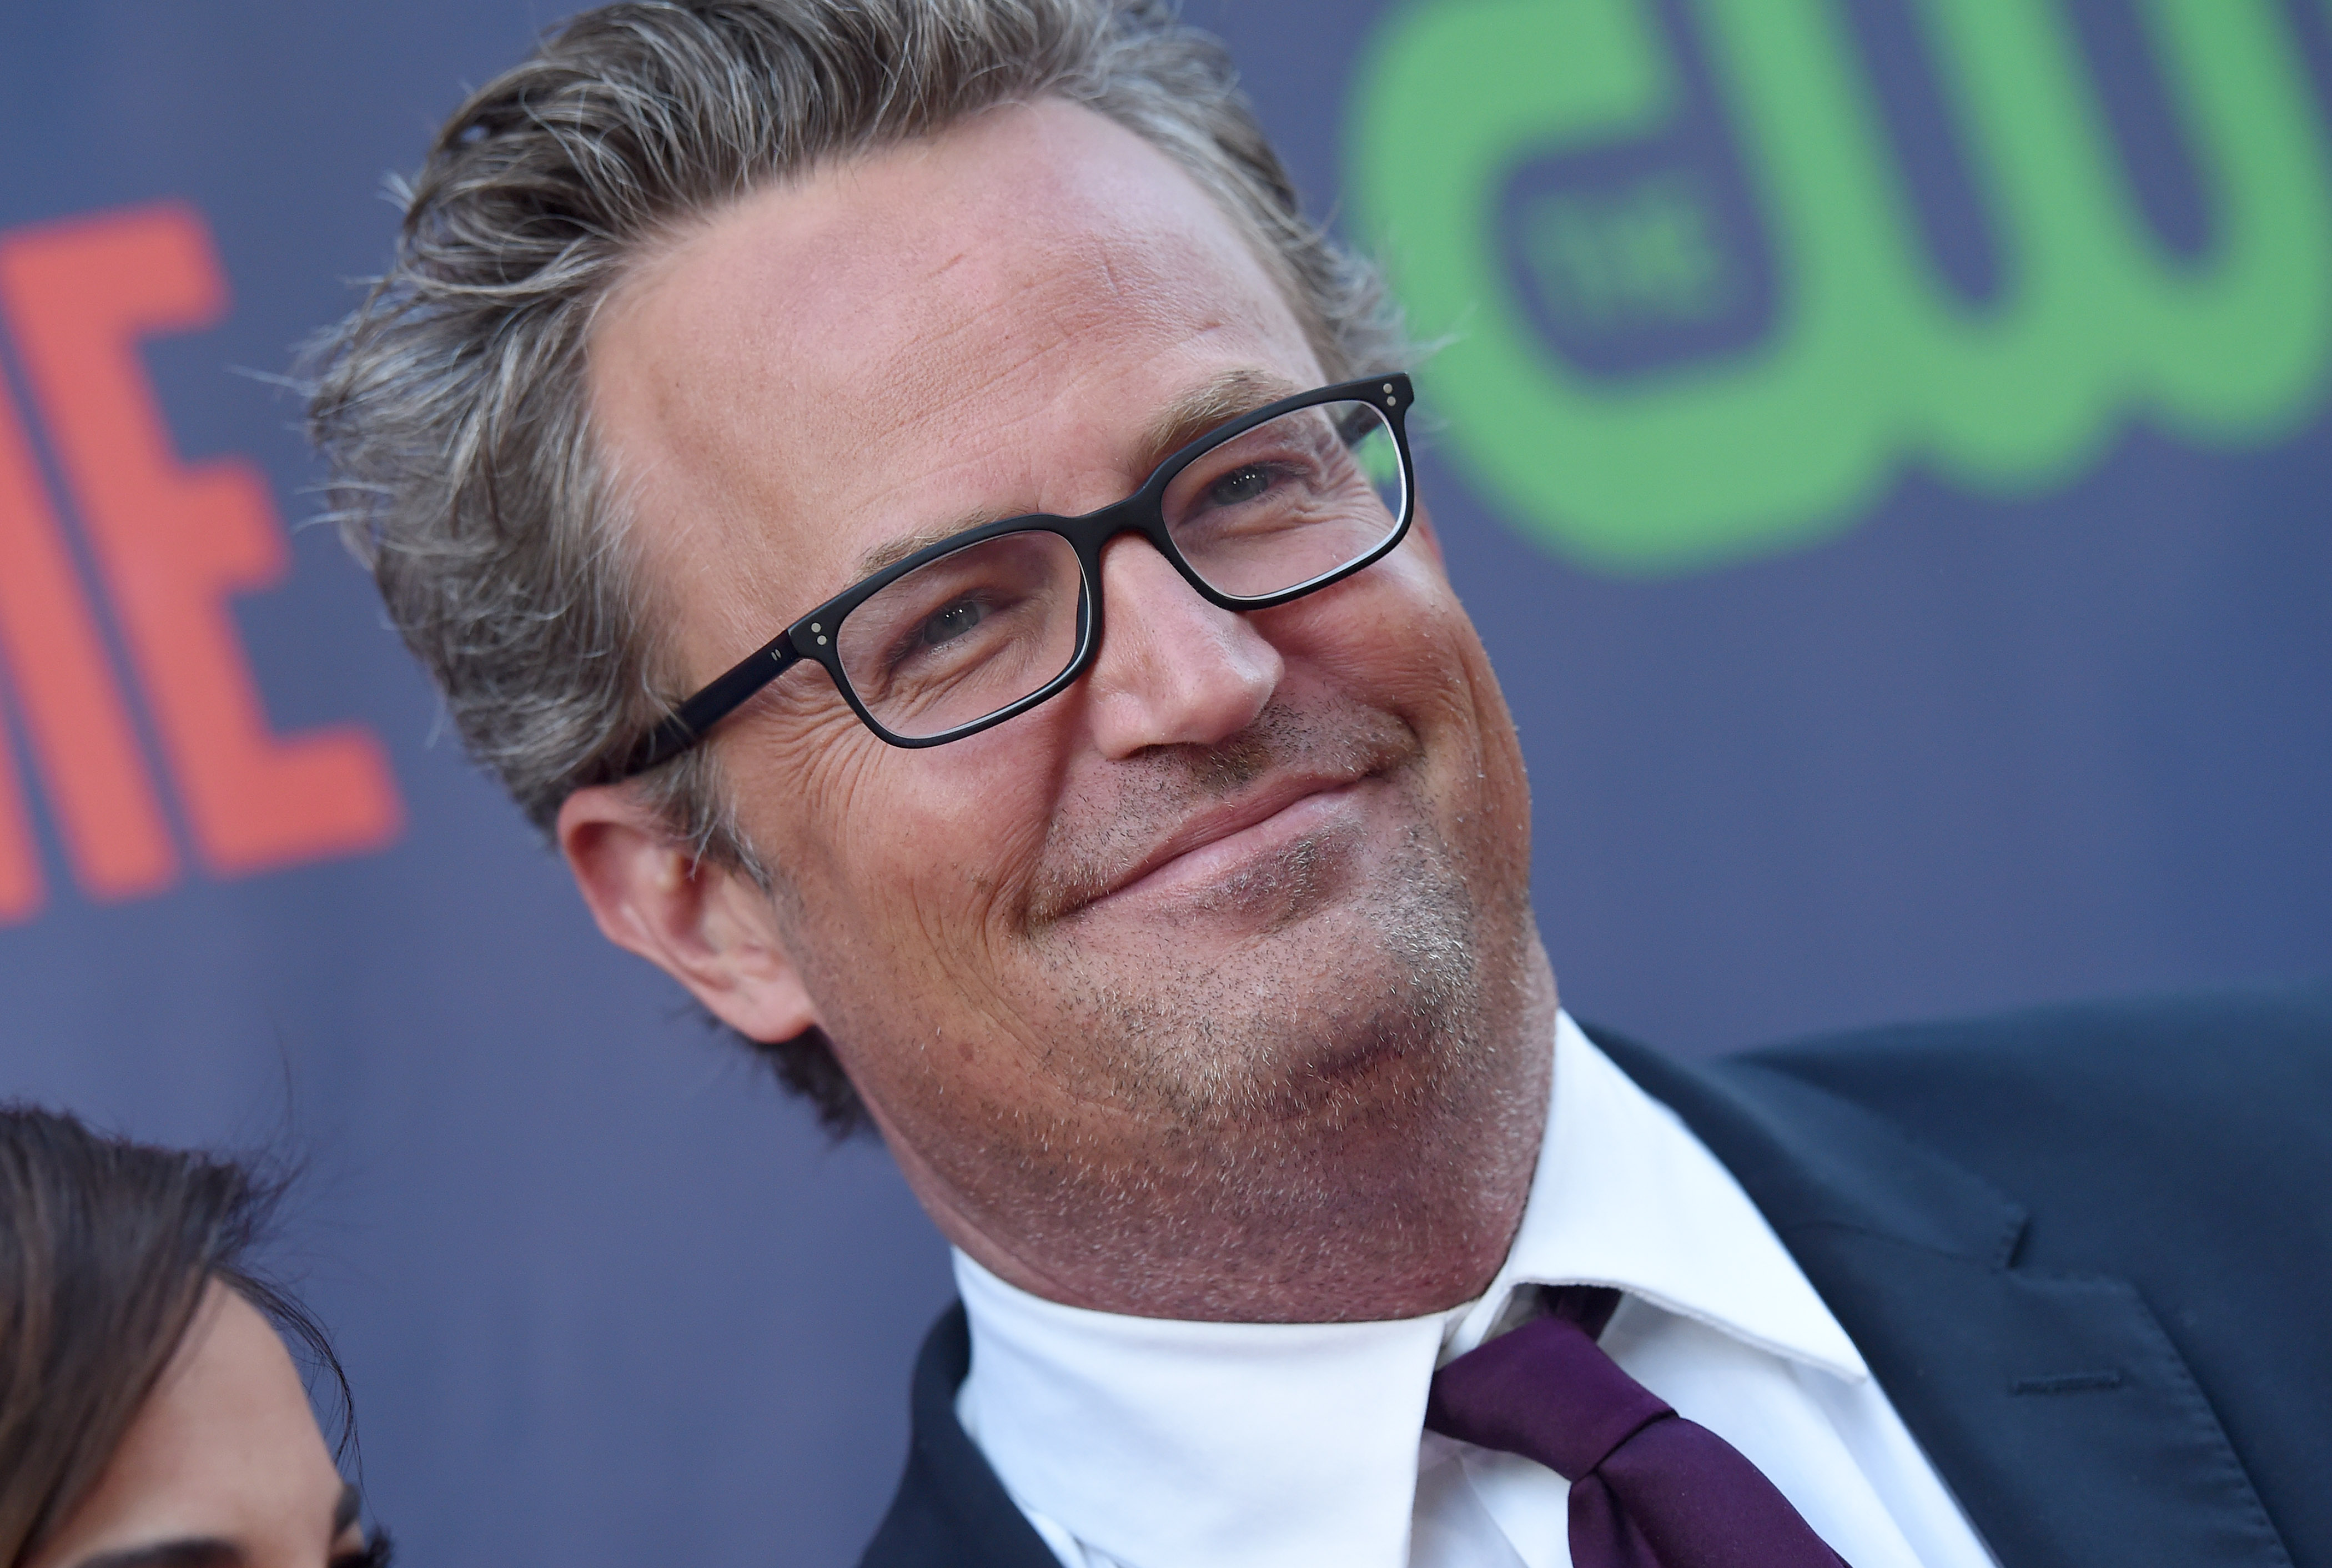 Friends star Matthew Perry reassures fans with update after he was kicked out of therapy